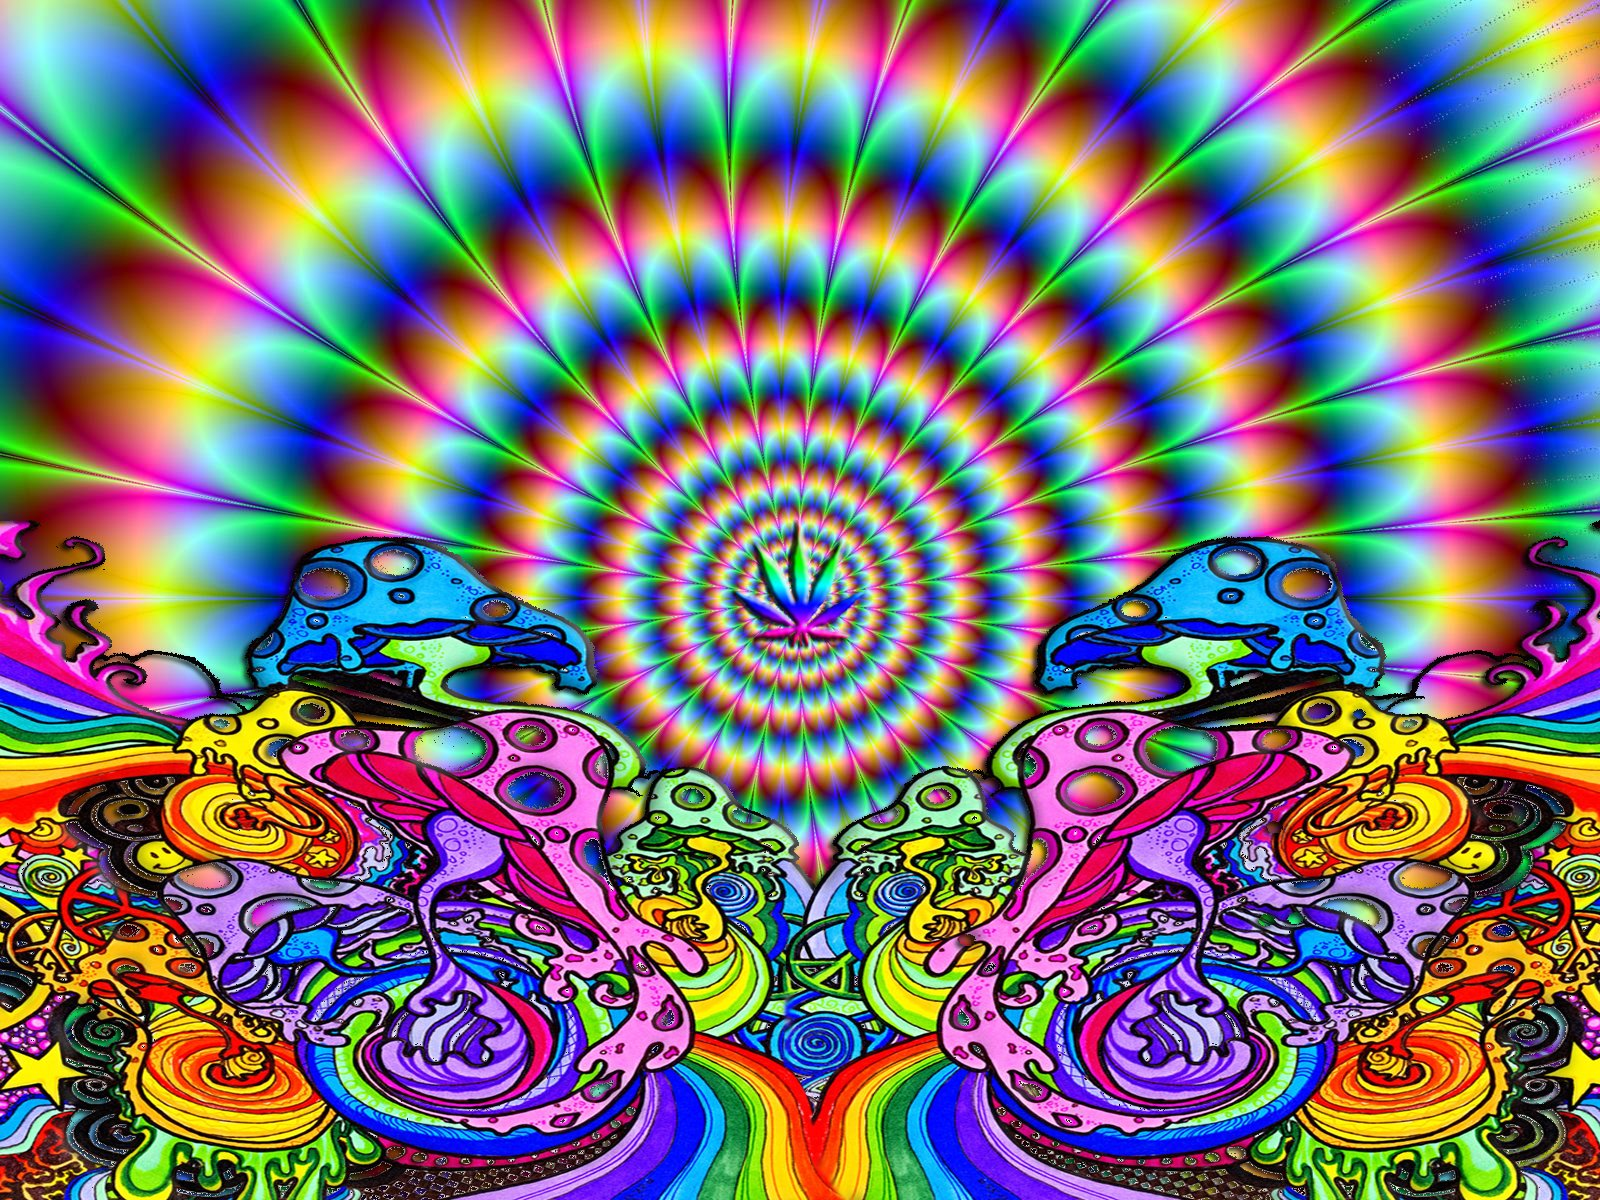 537 Psychedelic HD Wallpapers   Backgrounds - Wallpaper Abyss